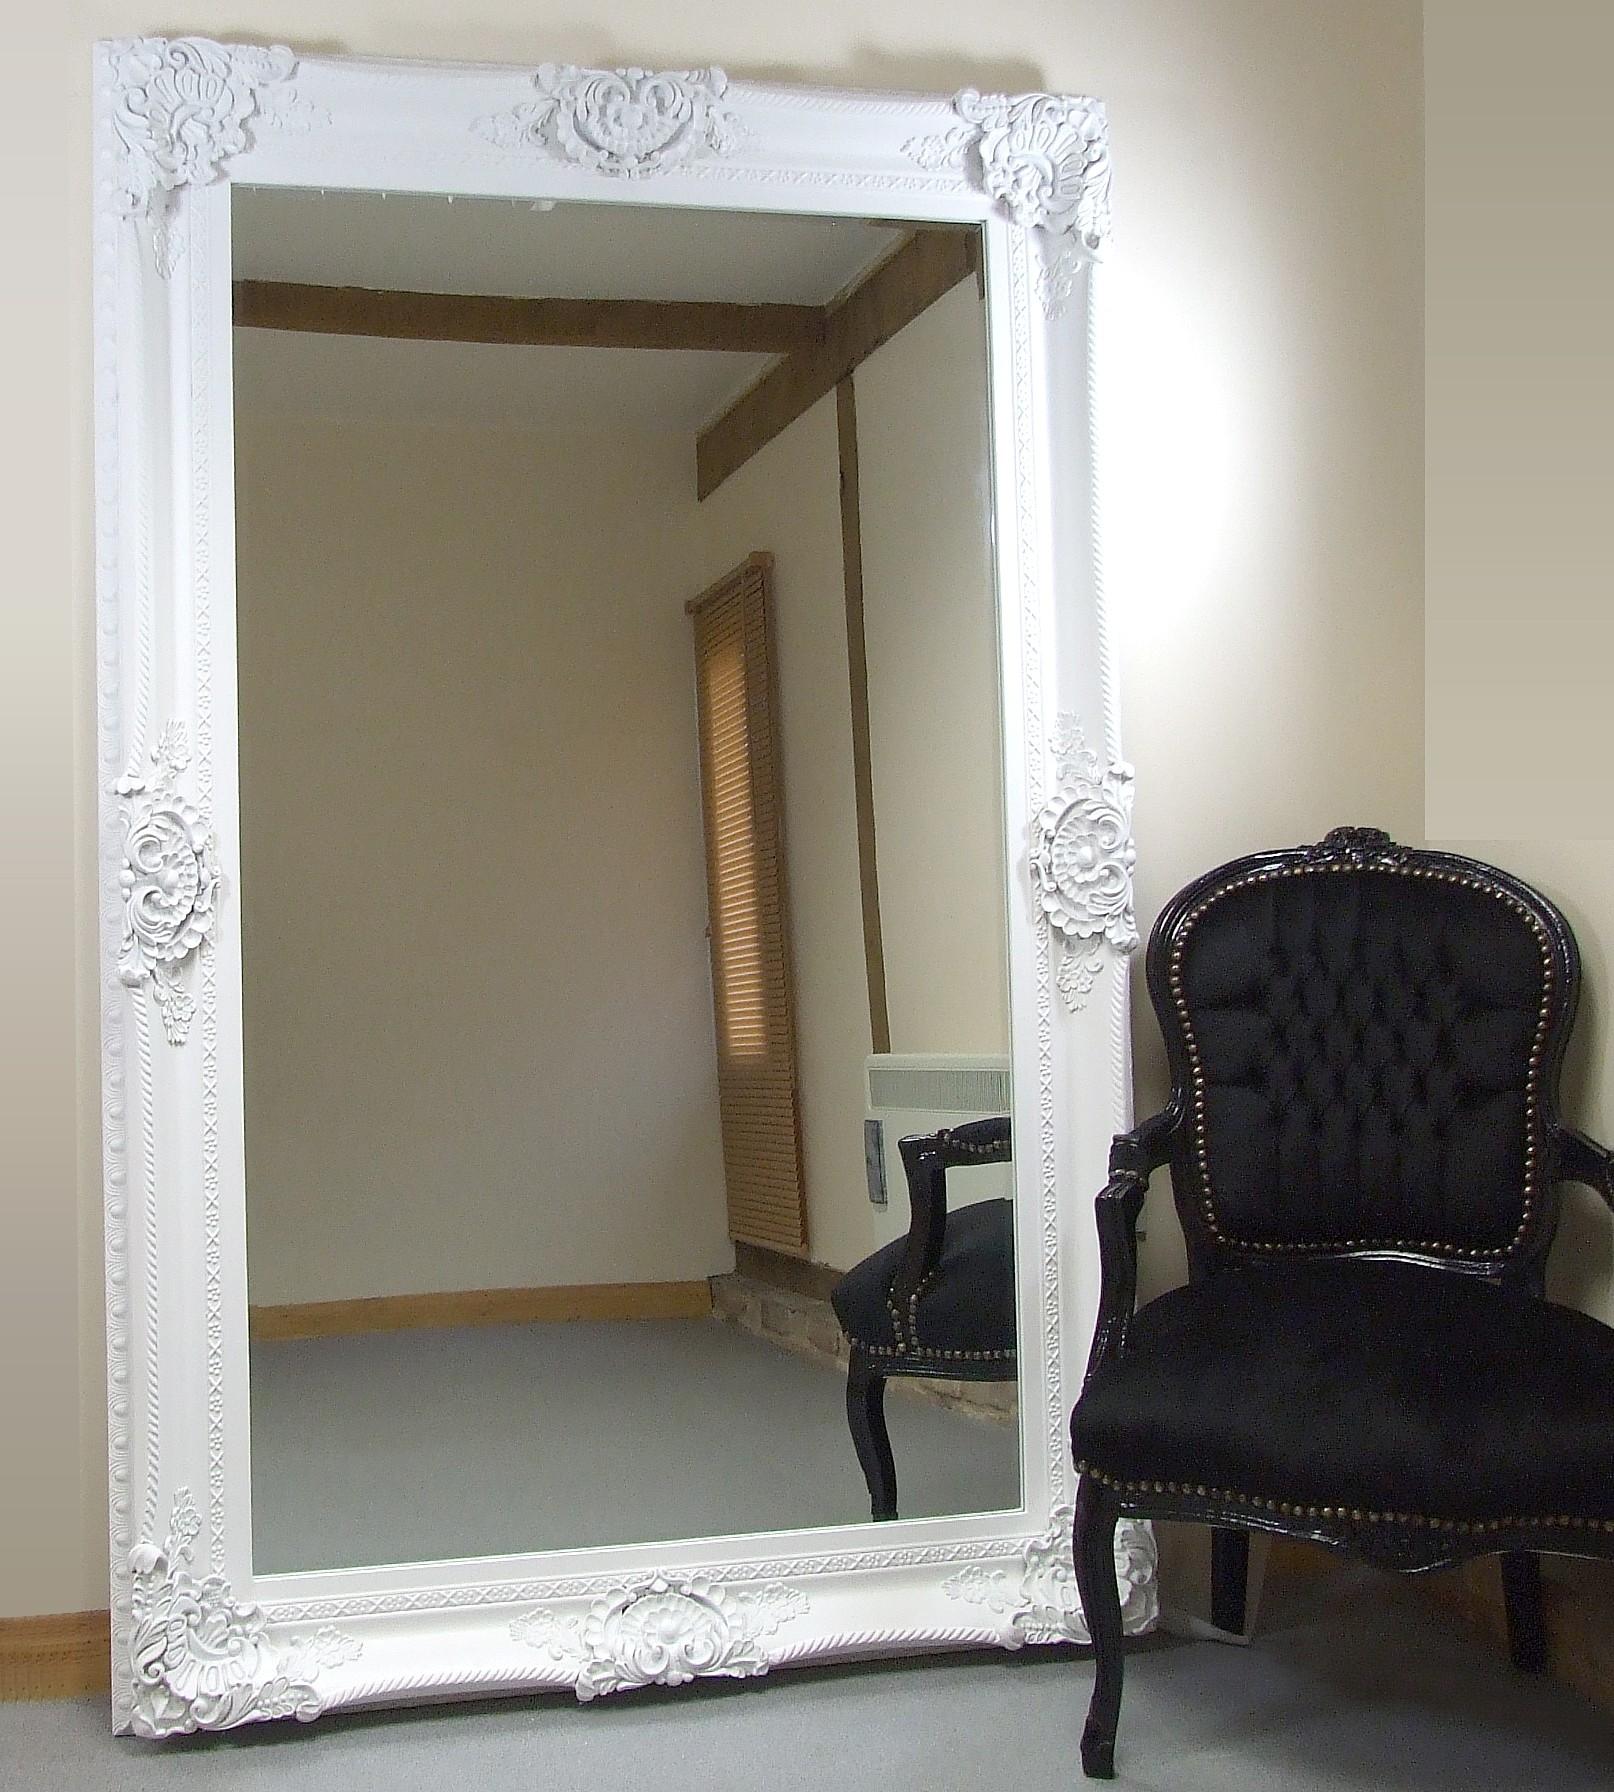 Seville Ornate Extra Large French Full Length Wall Leaner Mirror For Ornate Leaner Mirror (Image 15 of 15)